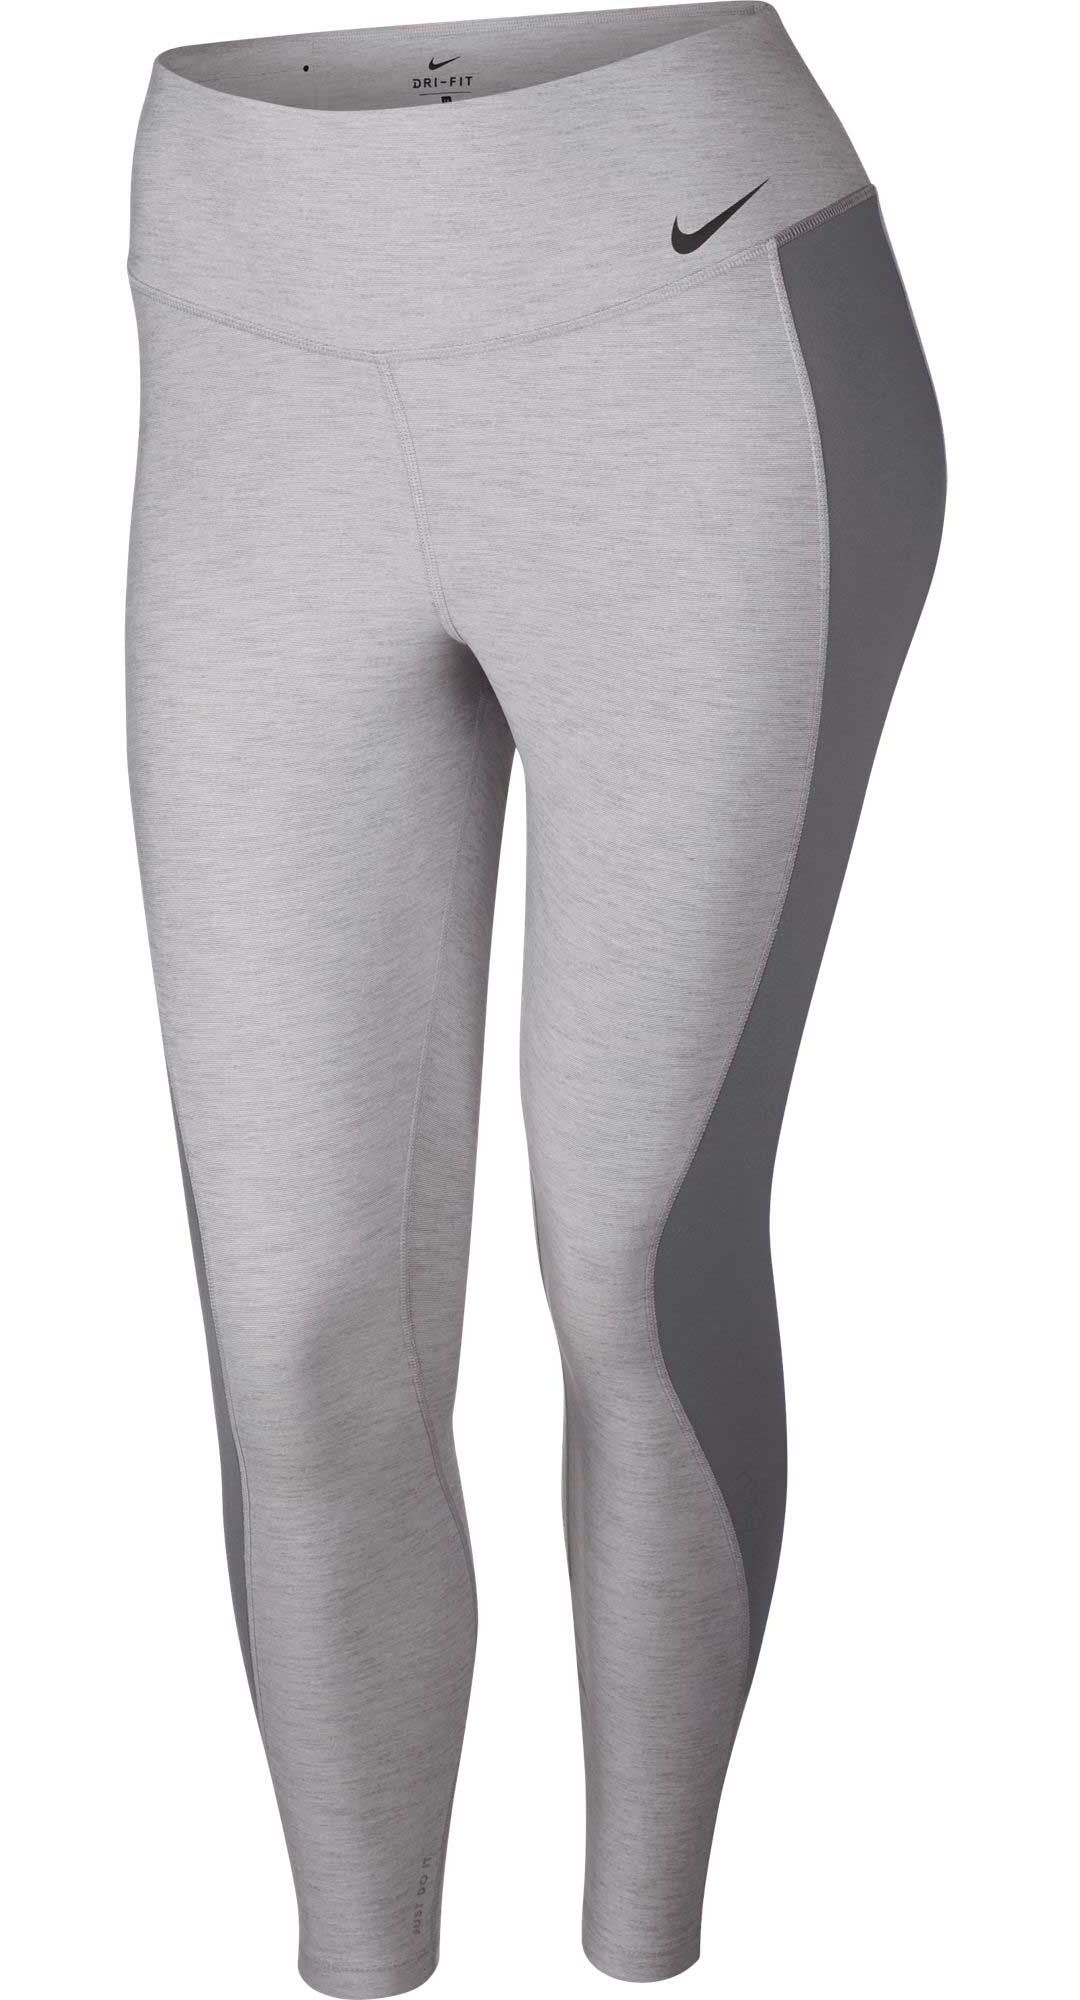 8e4dea5b975ef Nike Women's Plus Size Power Legend Training Tights. noImageFound. Previous